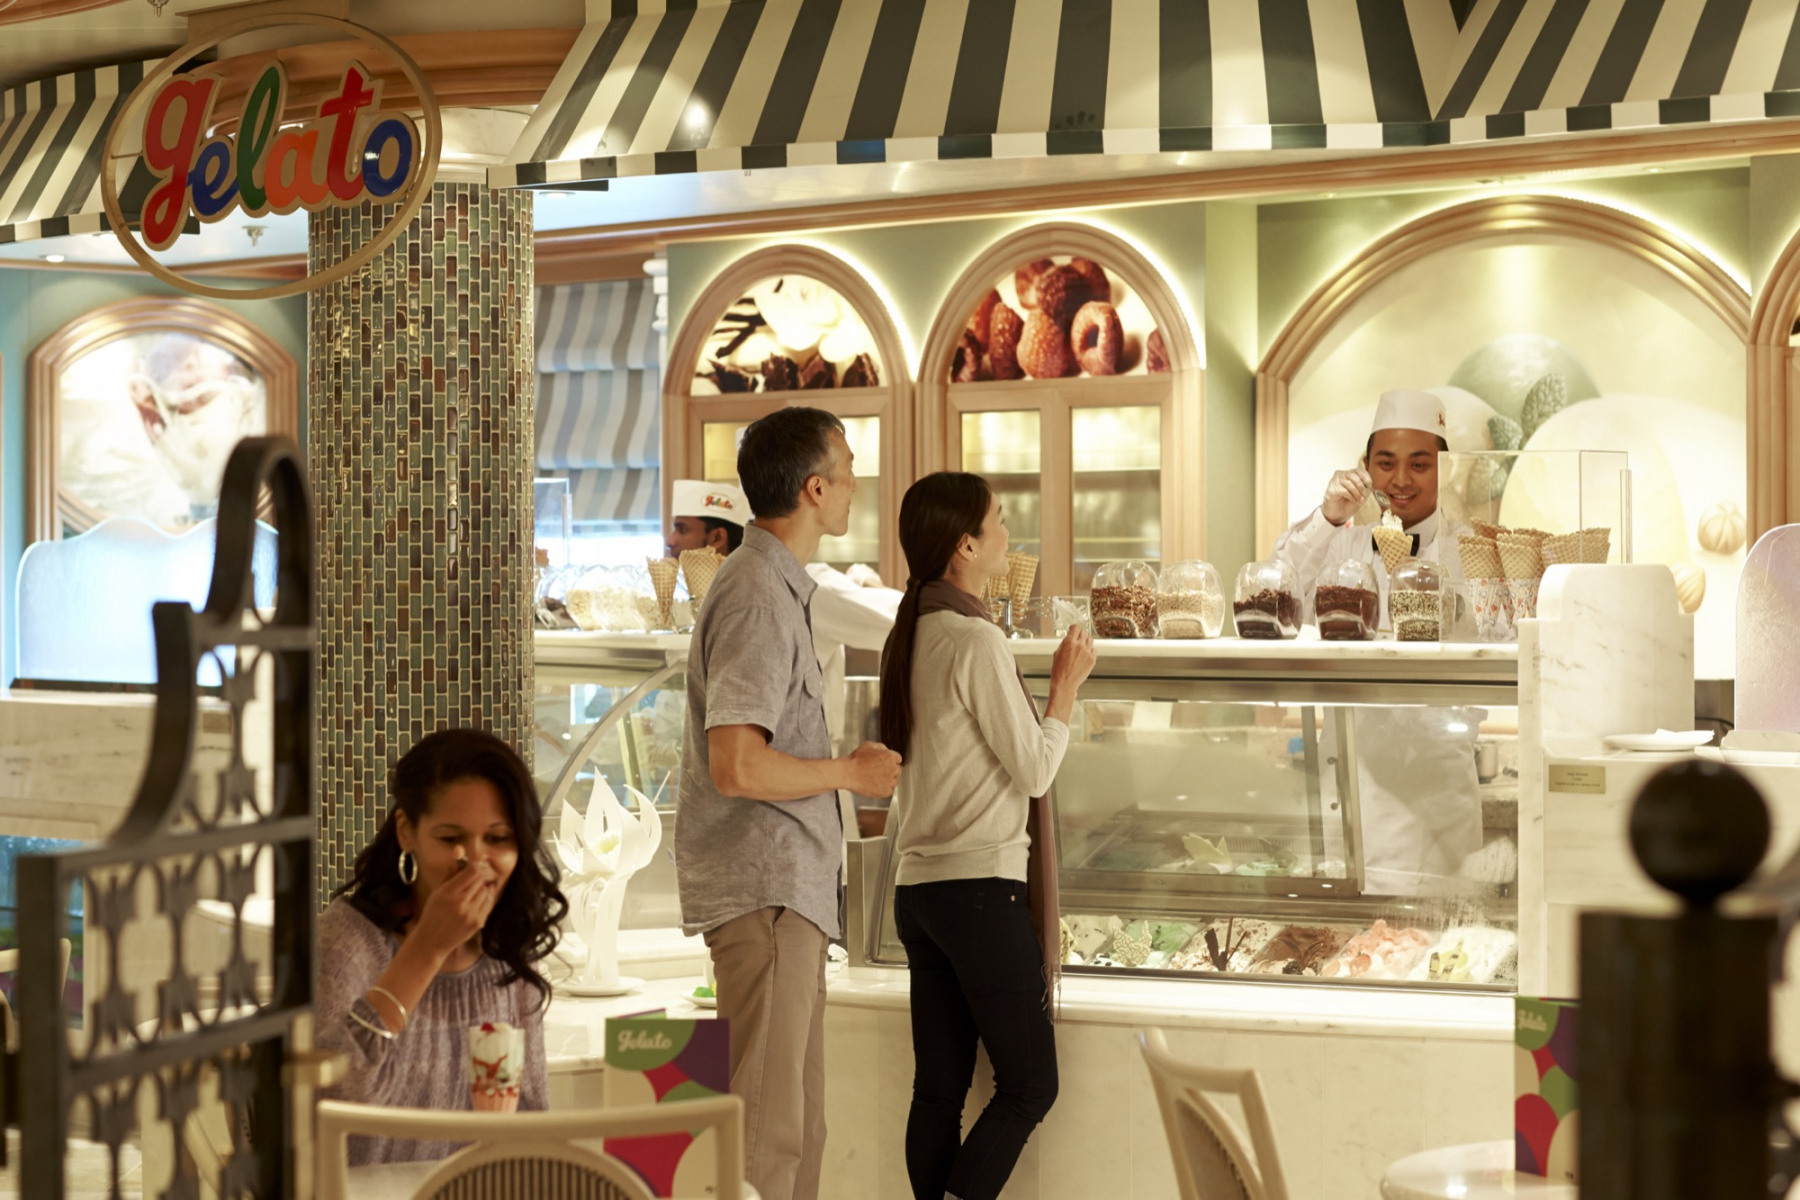 Princess Cruises Coral Class Interior Icecream bar.jpg